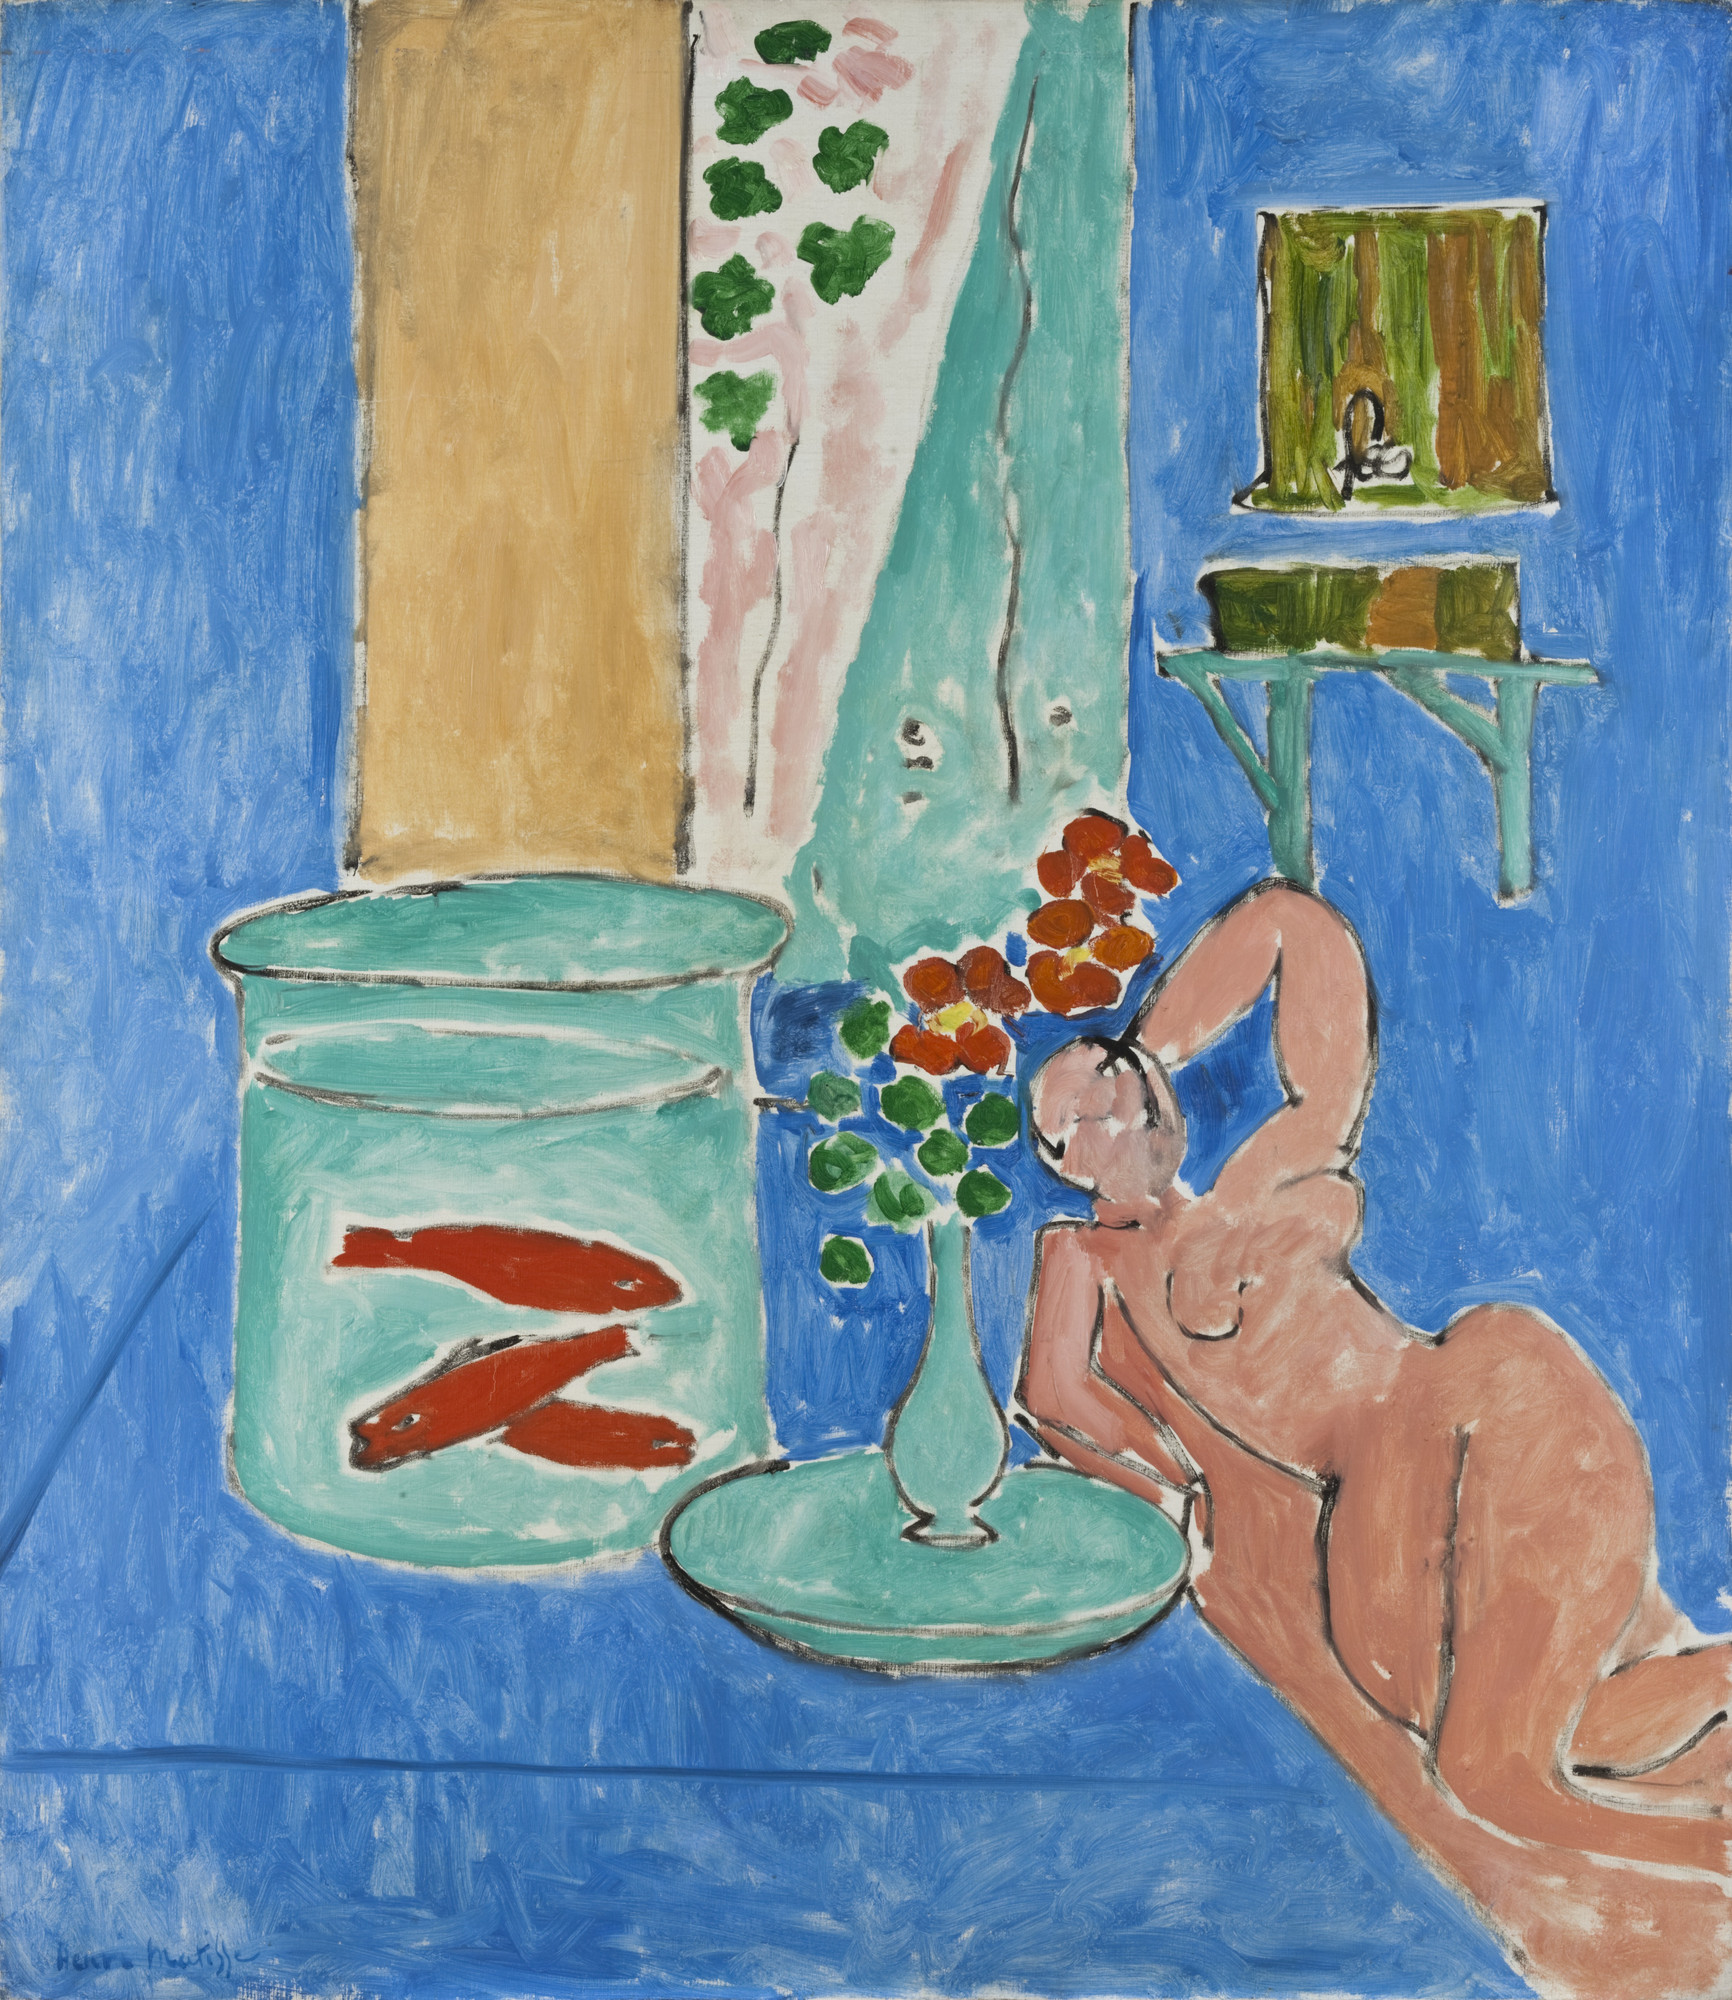 Henri Matisse. Goldfish and Sculpture. Issy-les-Moulineaux, spring-summer 1912